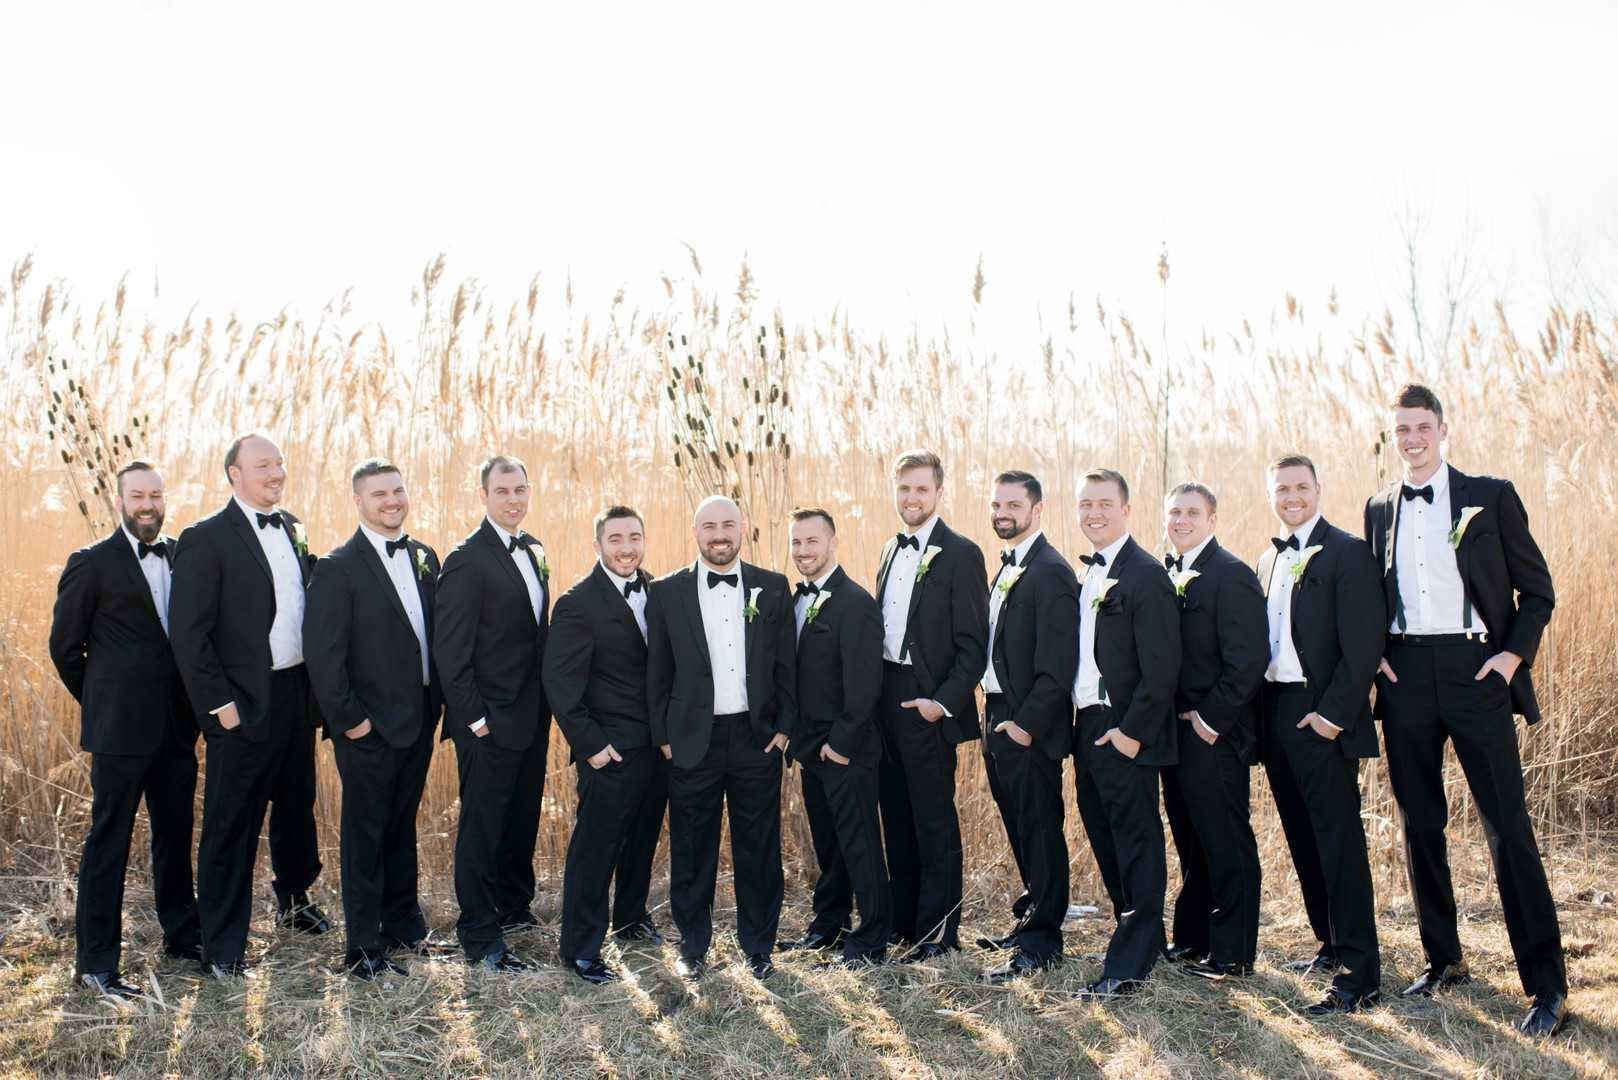 Groom and groomsmen | A Stunning St. Patrick's Day Wedding | Kate Aspen